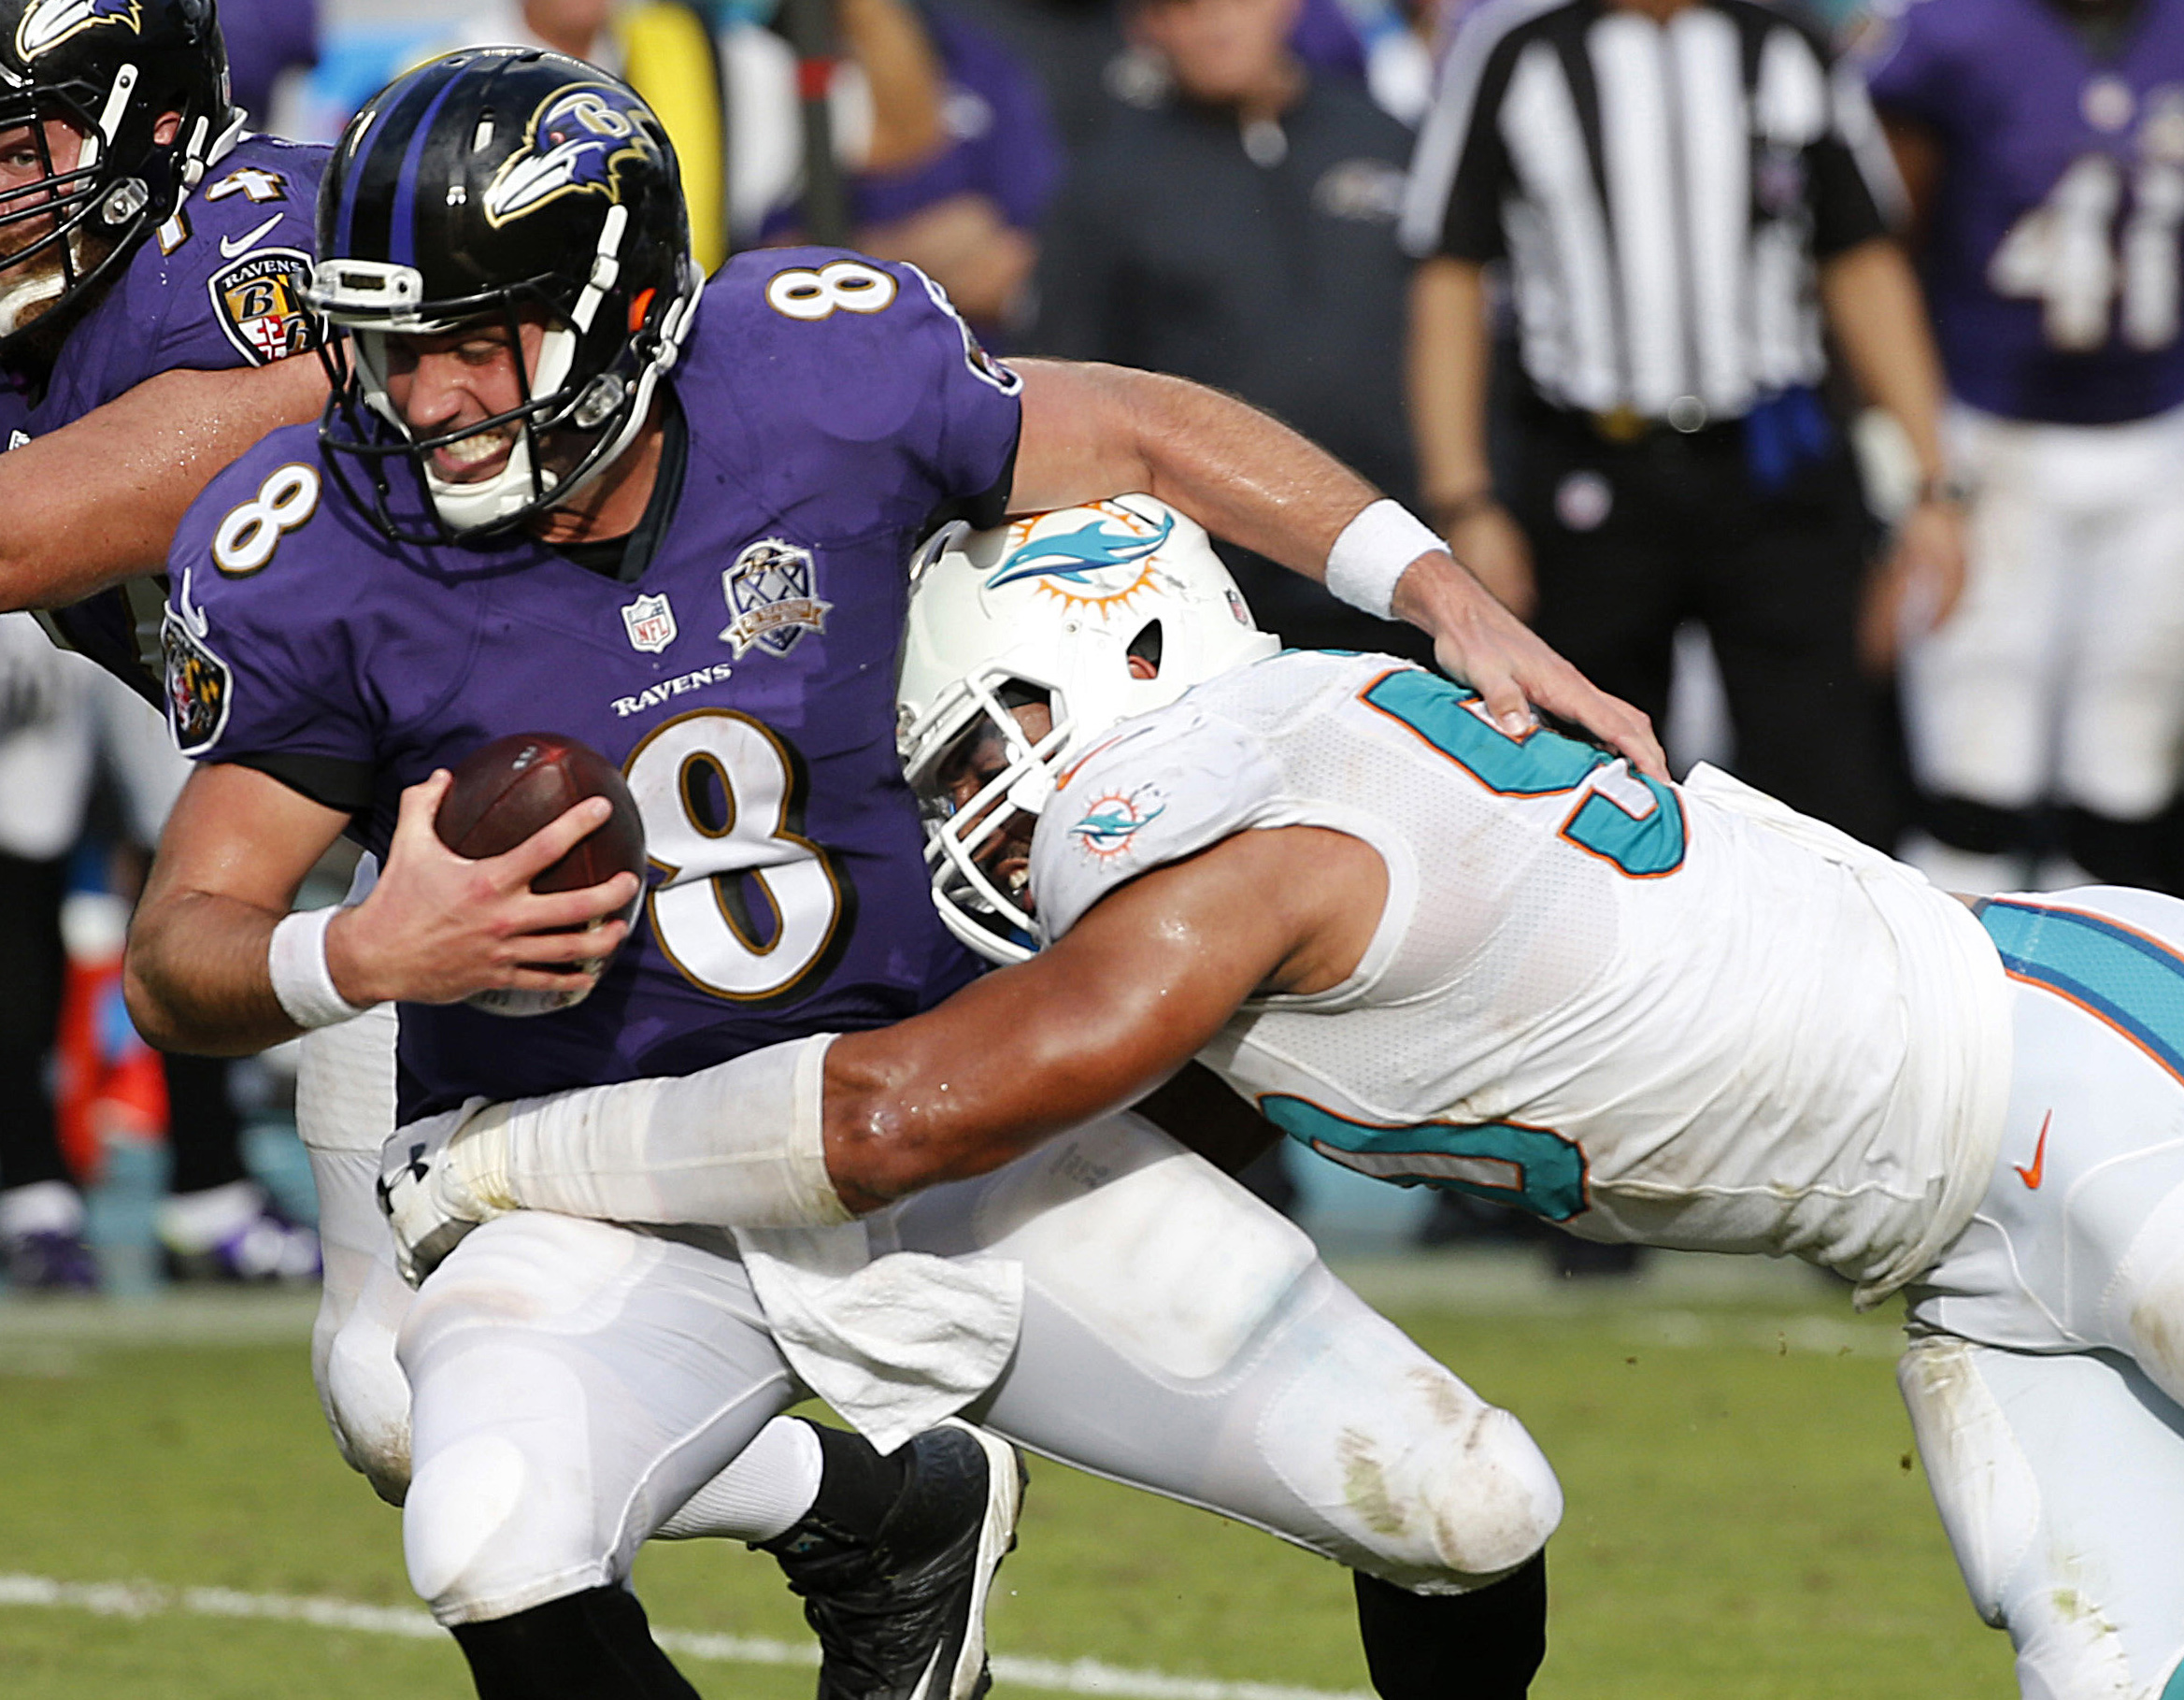 FILE - In this Dec. 6, 2015, file photo, Baltimore Ravens quarterback Matt Schaub (8) is sacked by Miami Dolphins defensive end Olivier Vernon (50), during the second half of an NFL football game, in Miami Gardens, Fla. New York Giants defensive coordinat